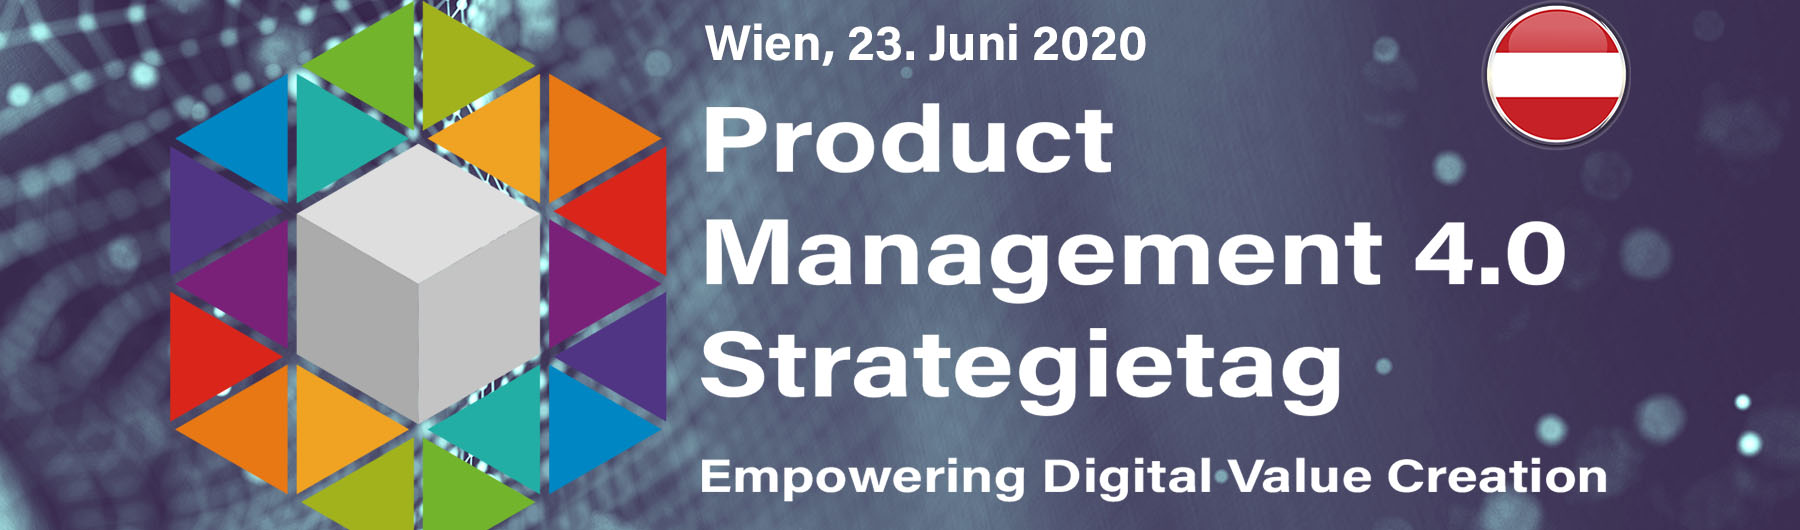 Product Management 4.0 Strategietag Wien 2020